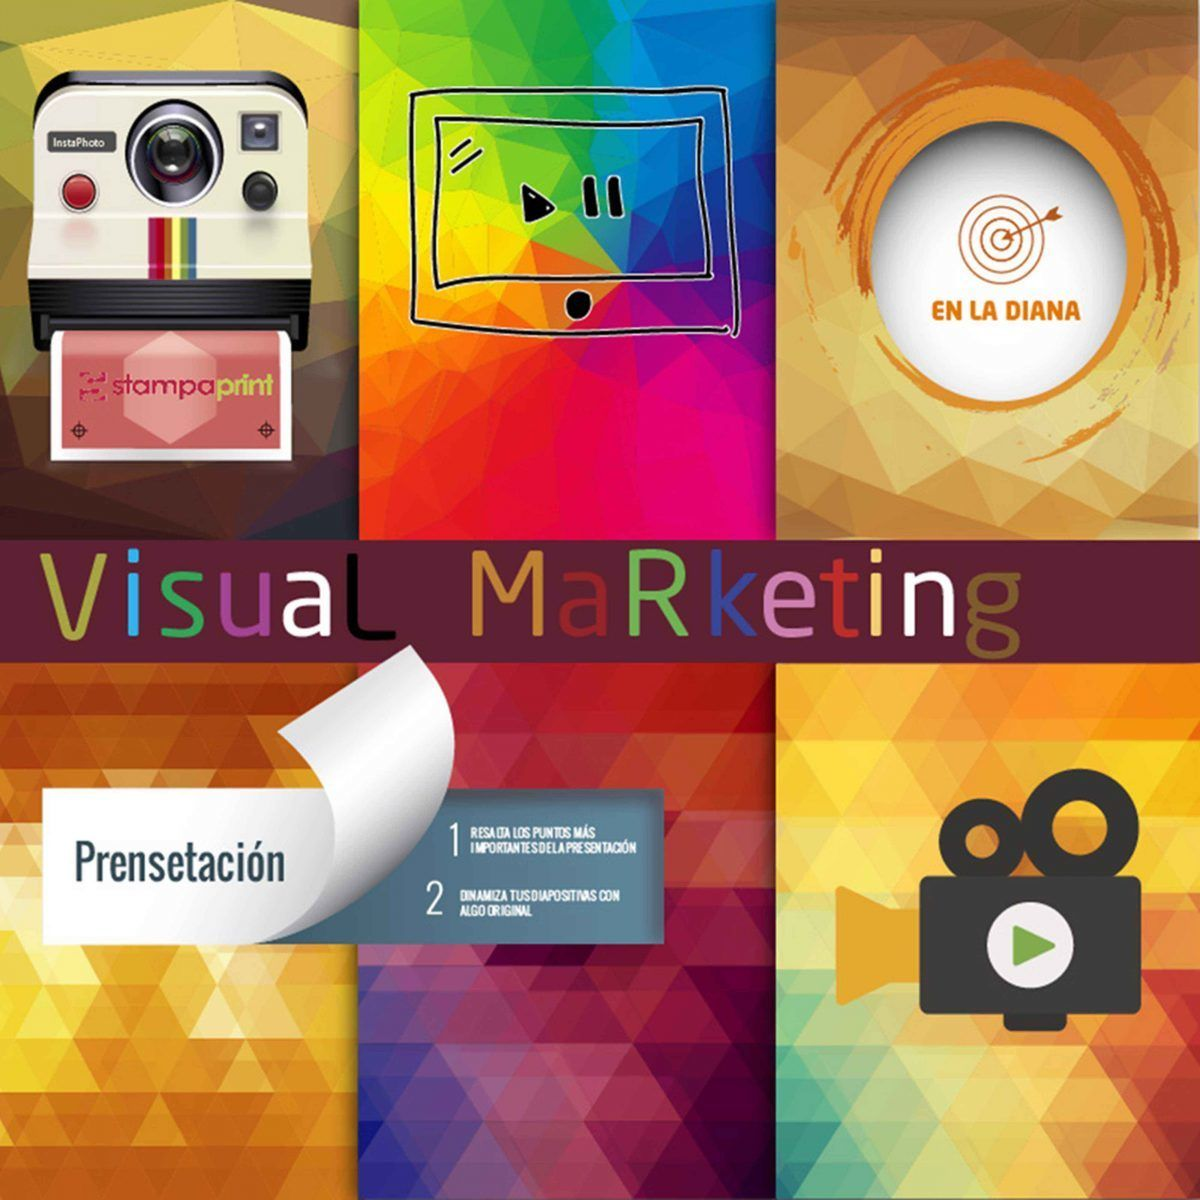 Visual Marketing: la importancia de las imágenes en las redes